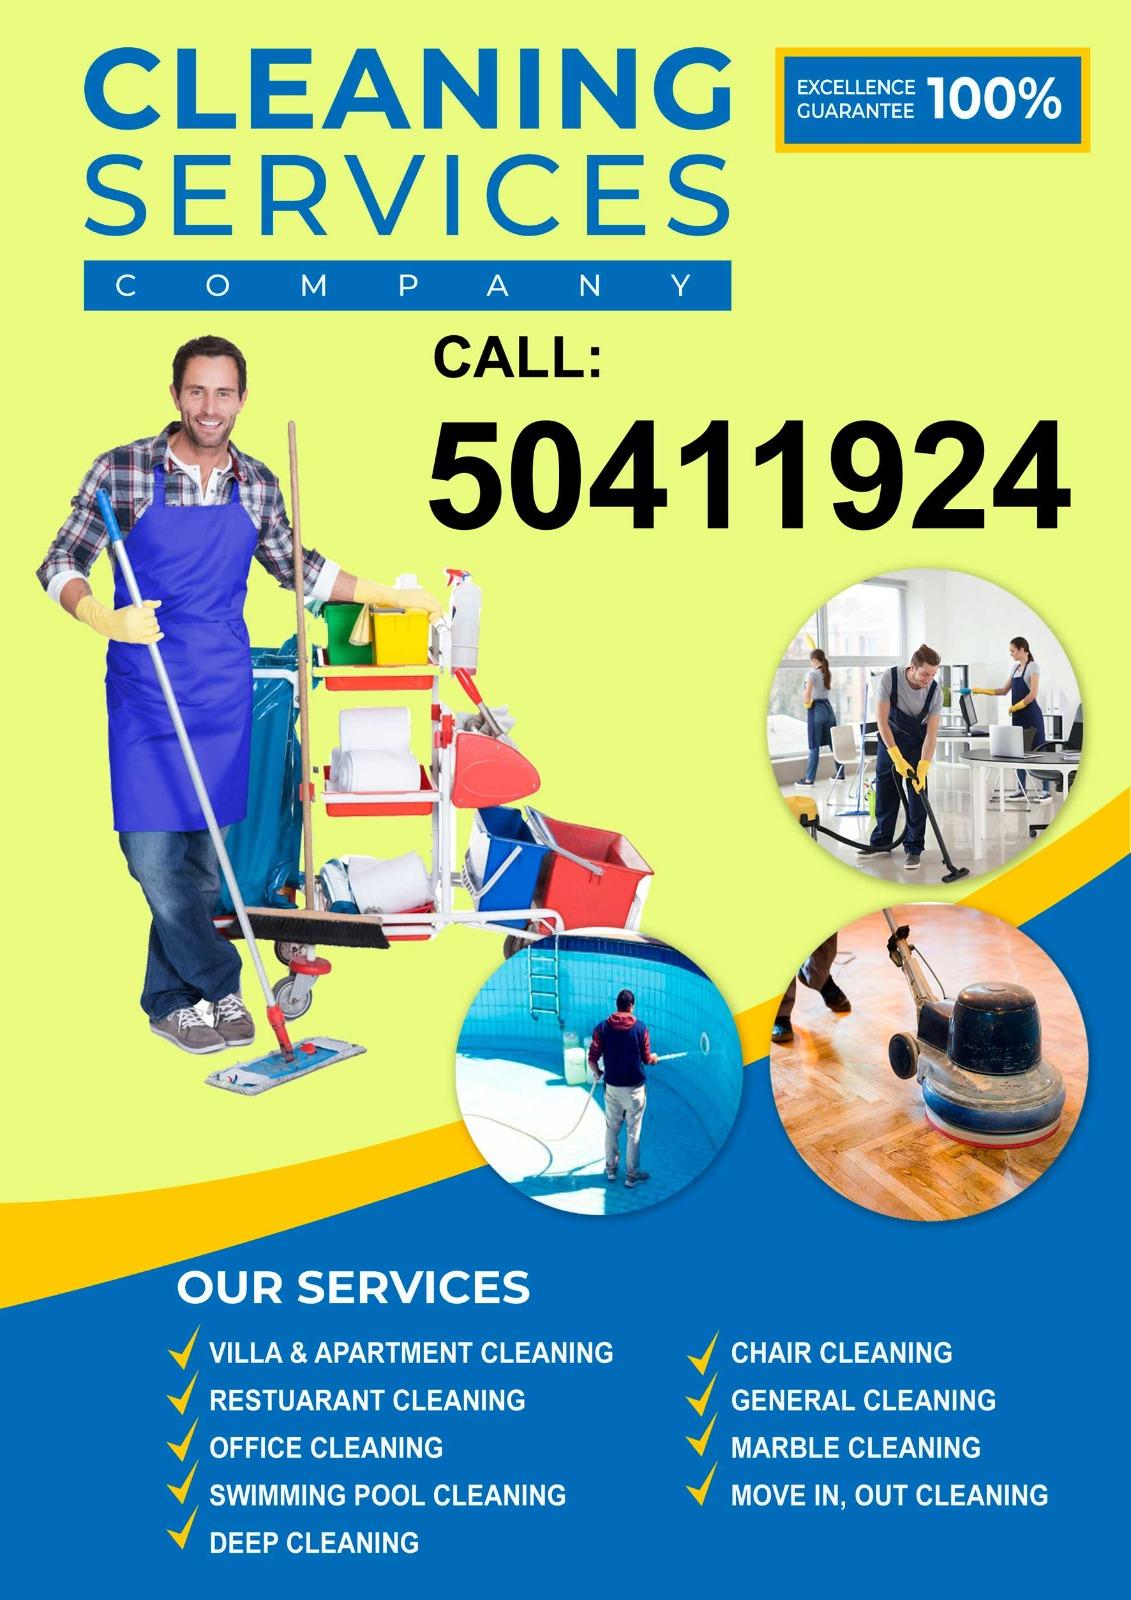 Cleaning services company   Please call 50411924